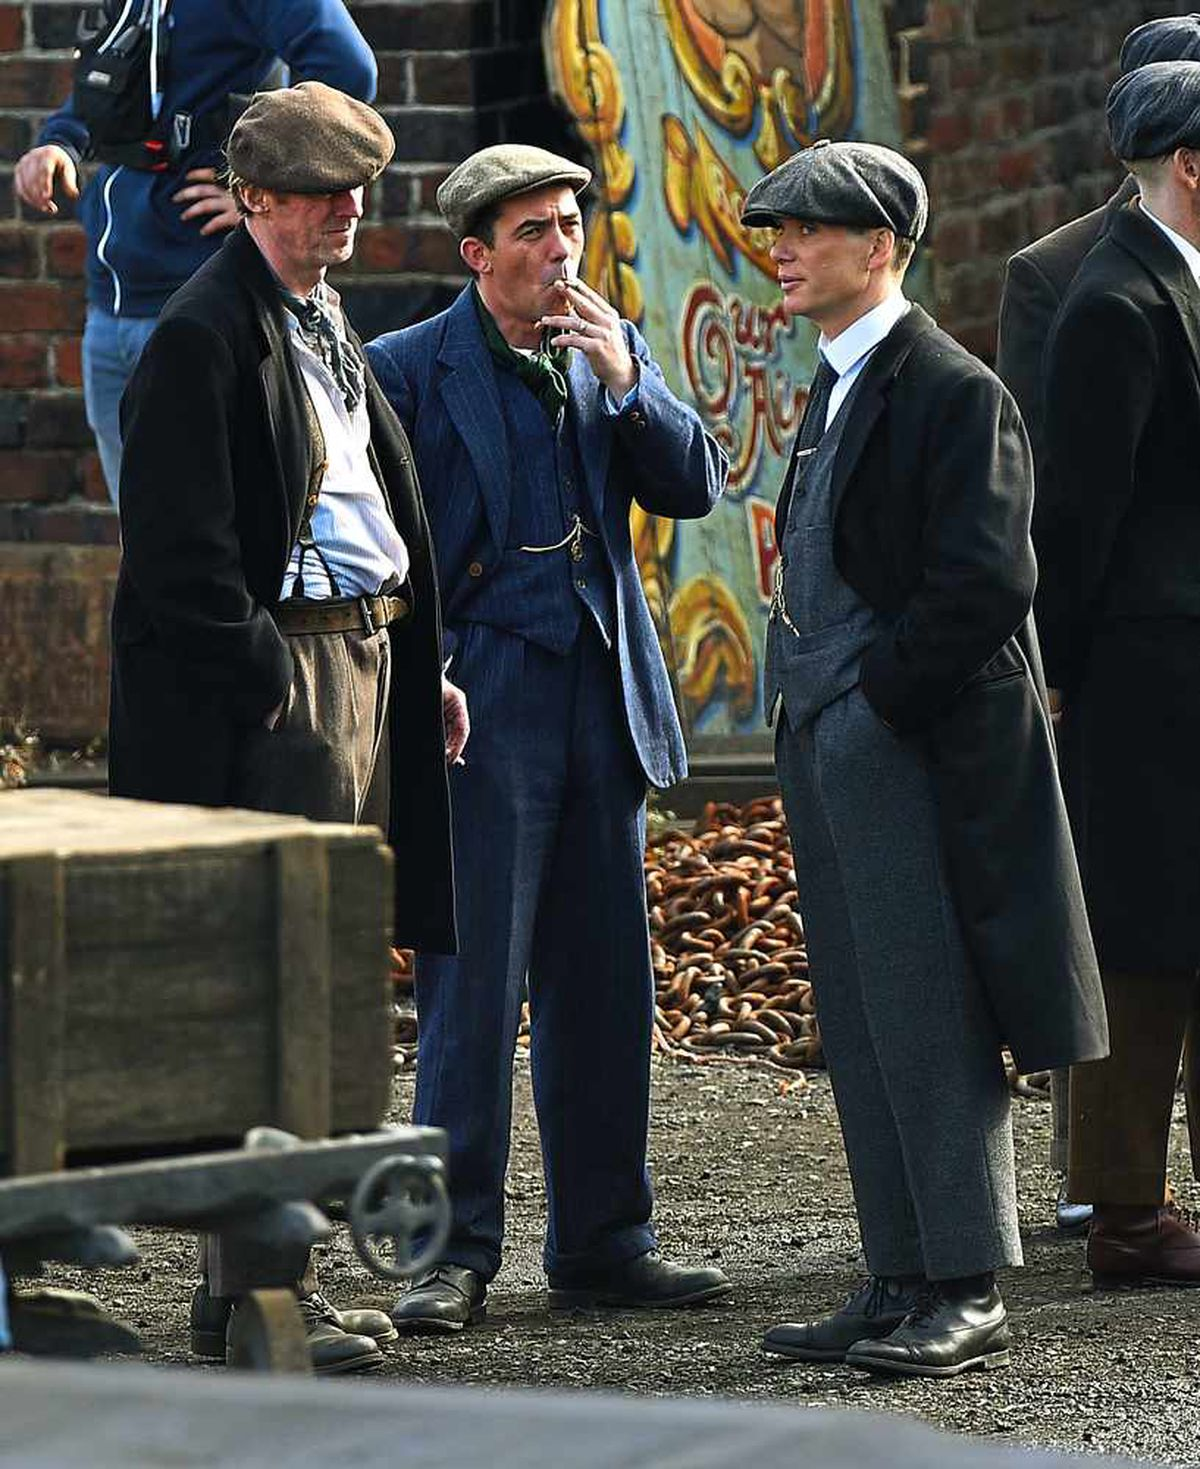 Cillian filming his Peaky Blinders role at the Black Country Living Museum